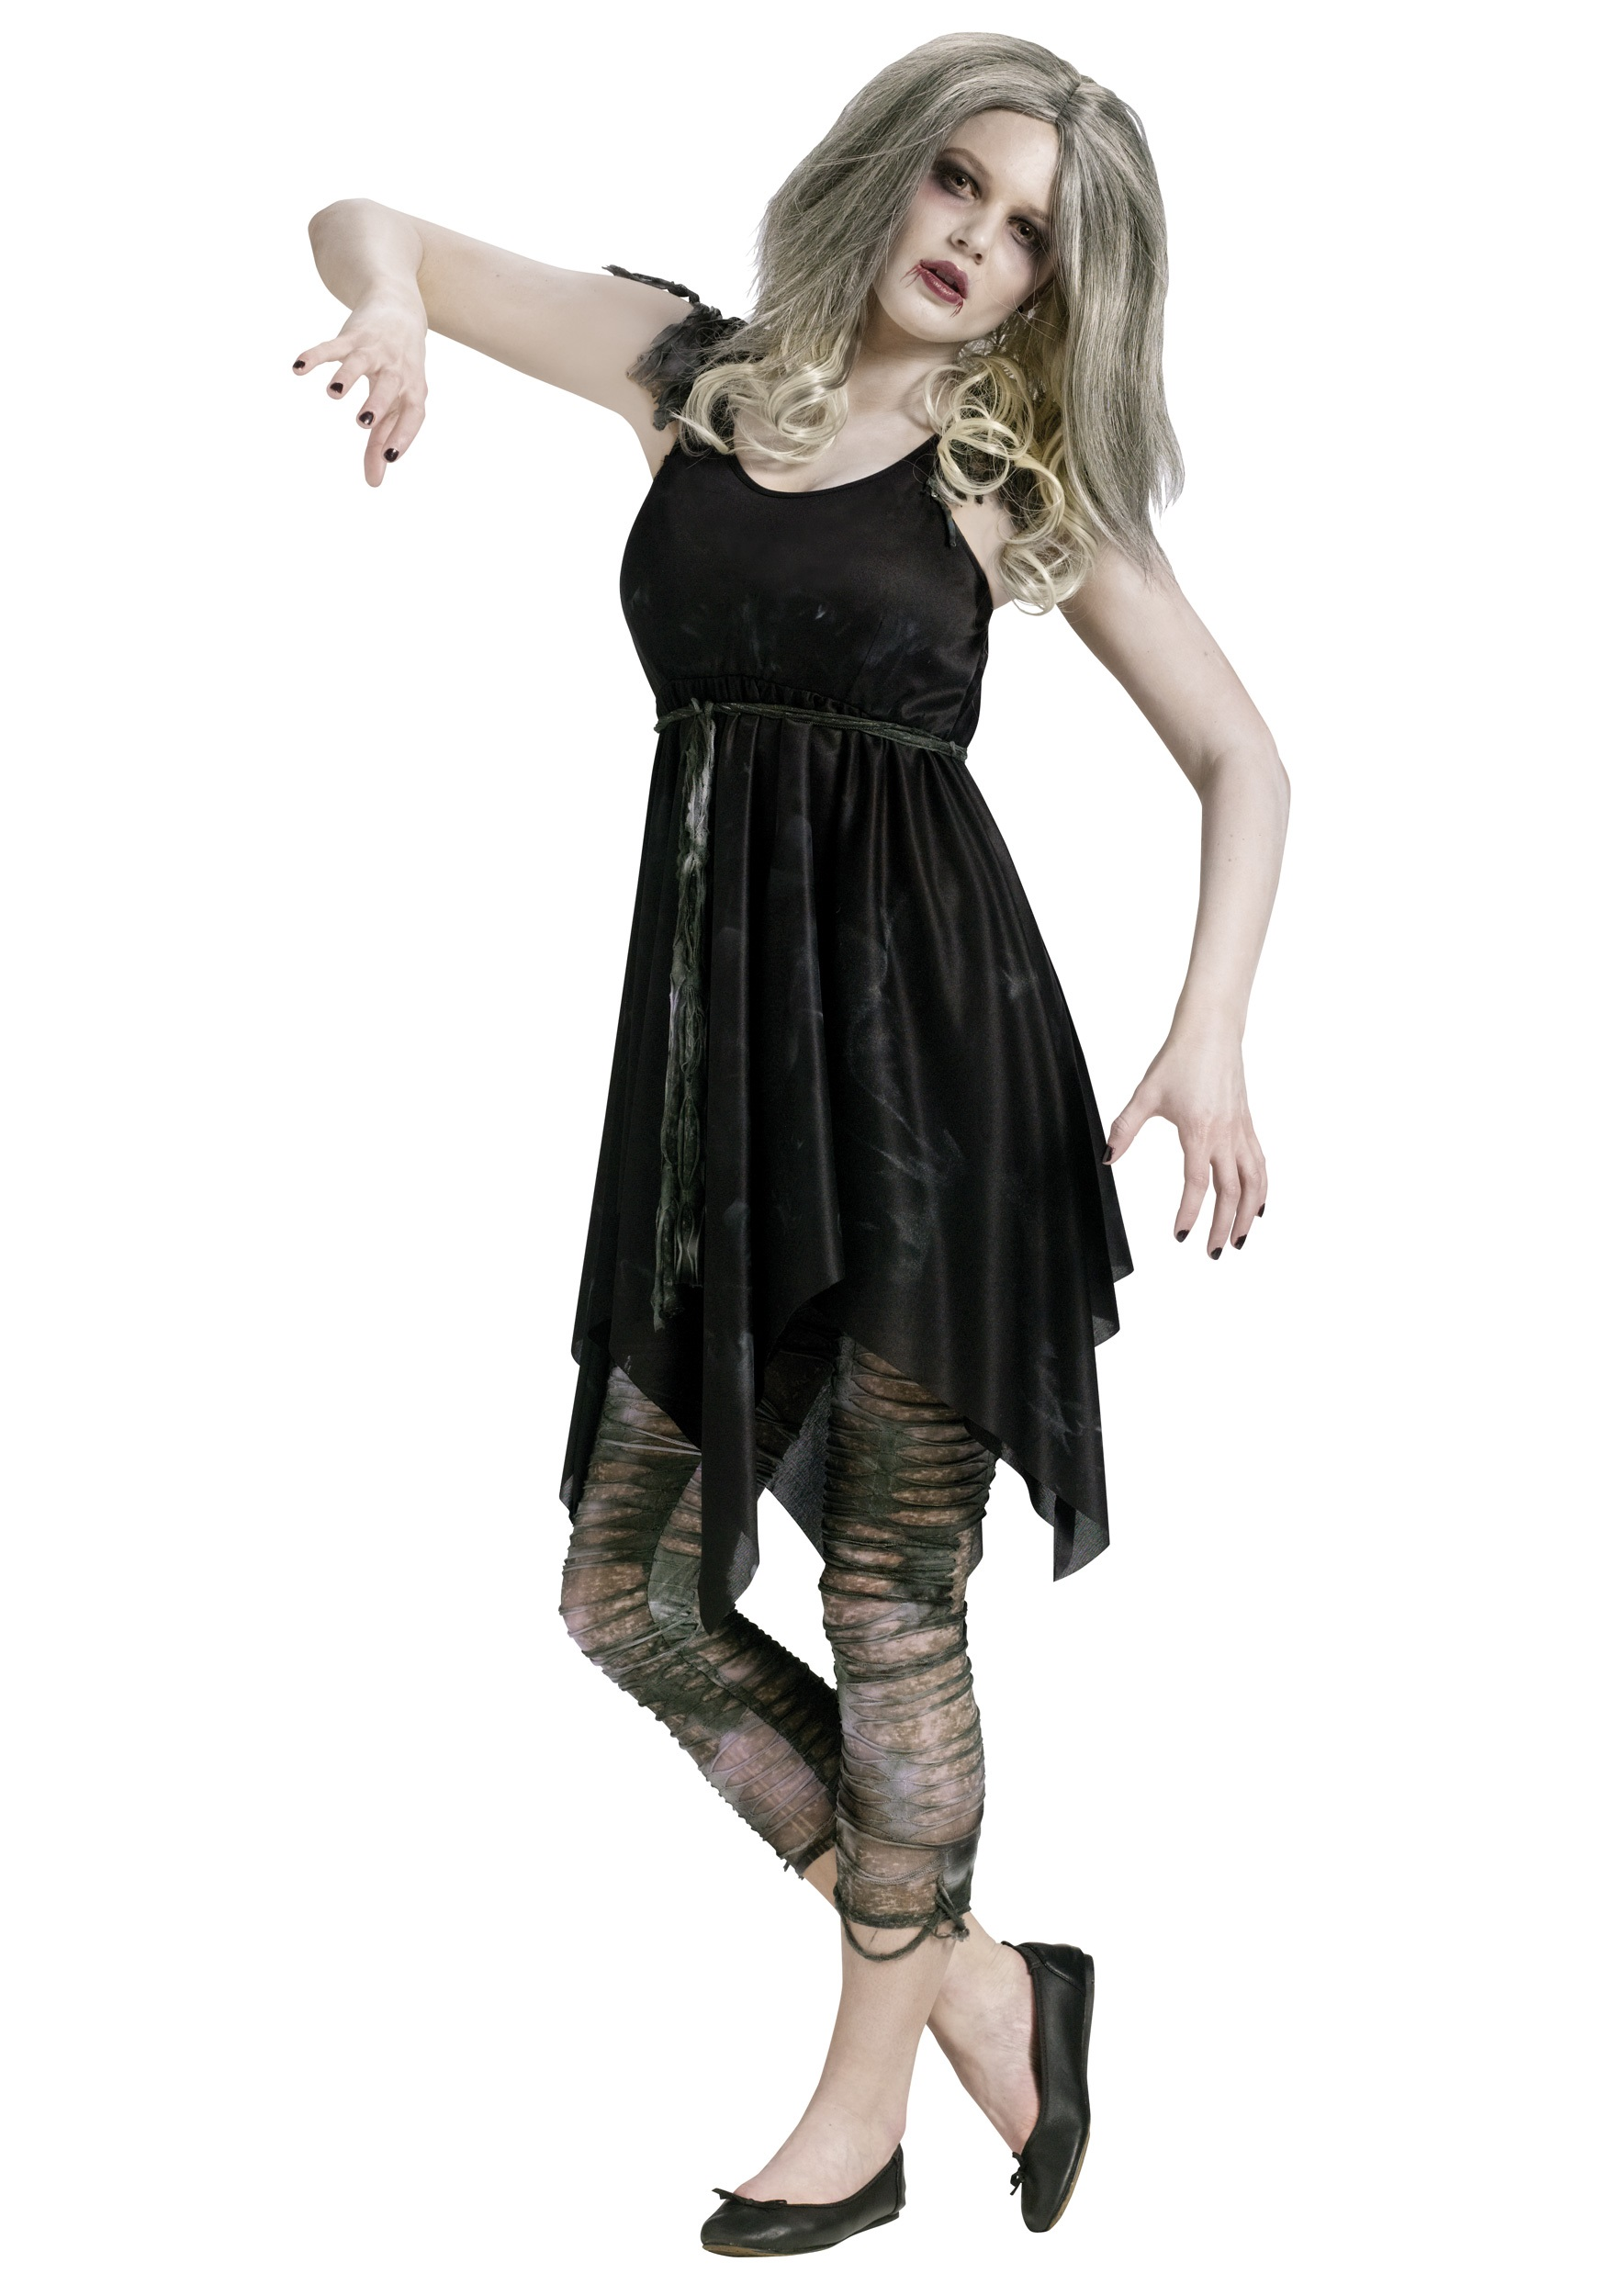 Halloween Zombie Costumes For Girls.Teen Night Zombie Costume